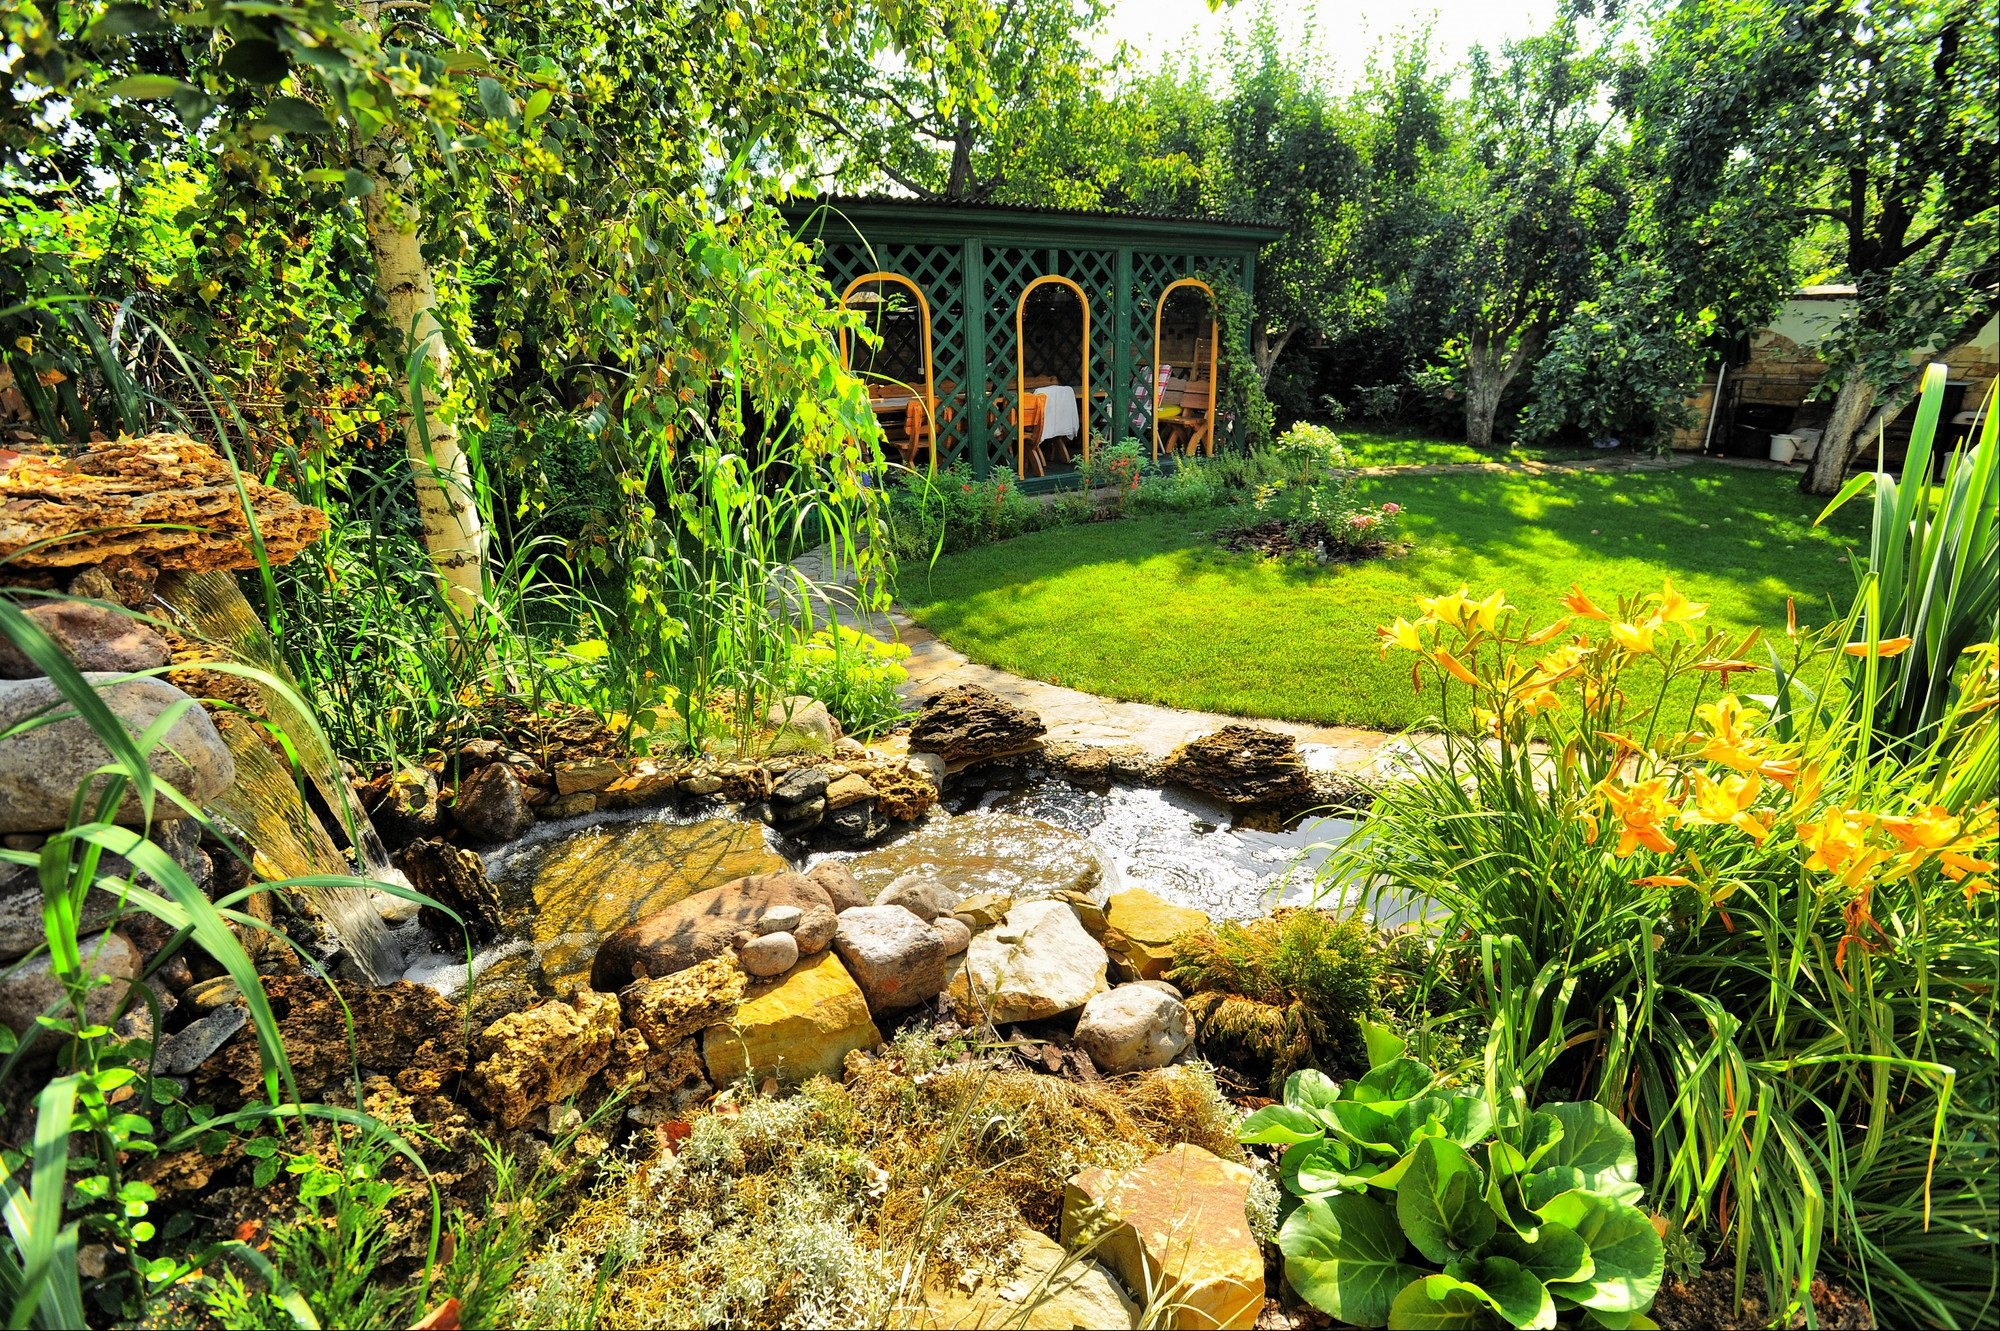 tranquil garden area with waterfall